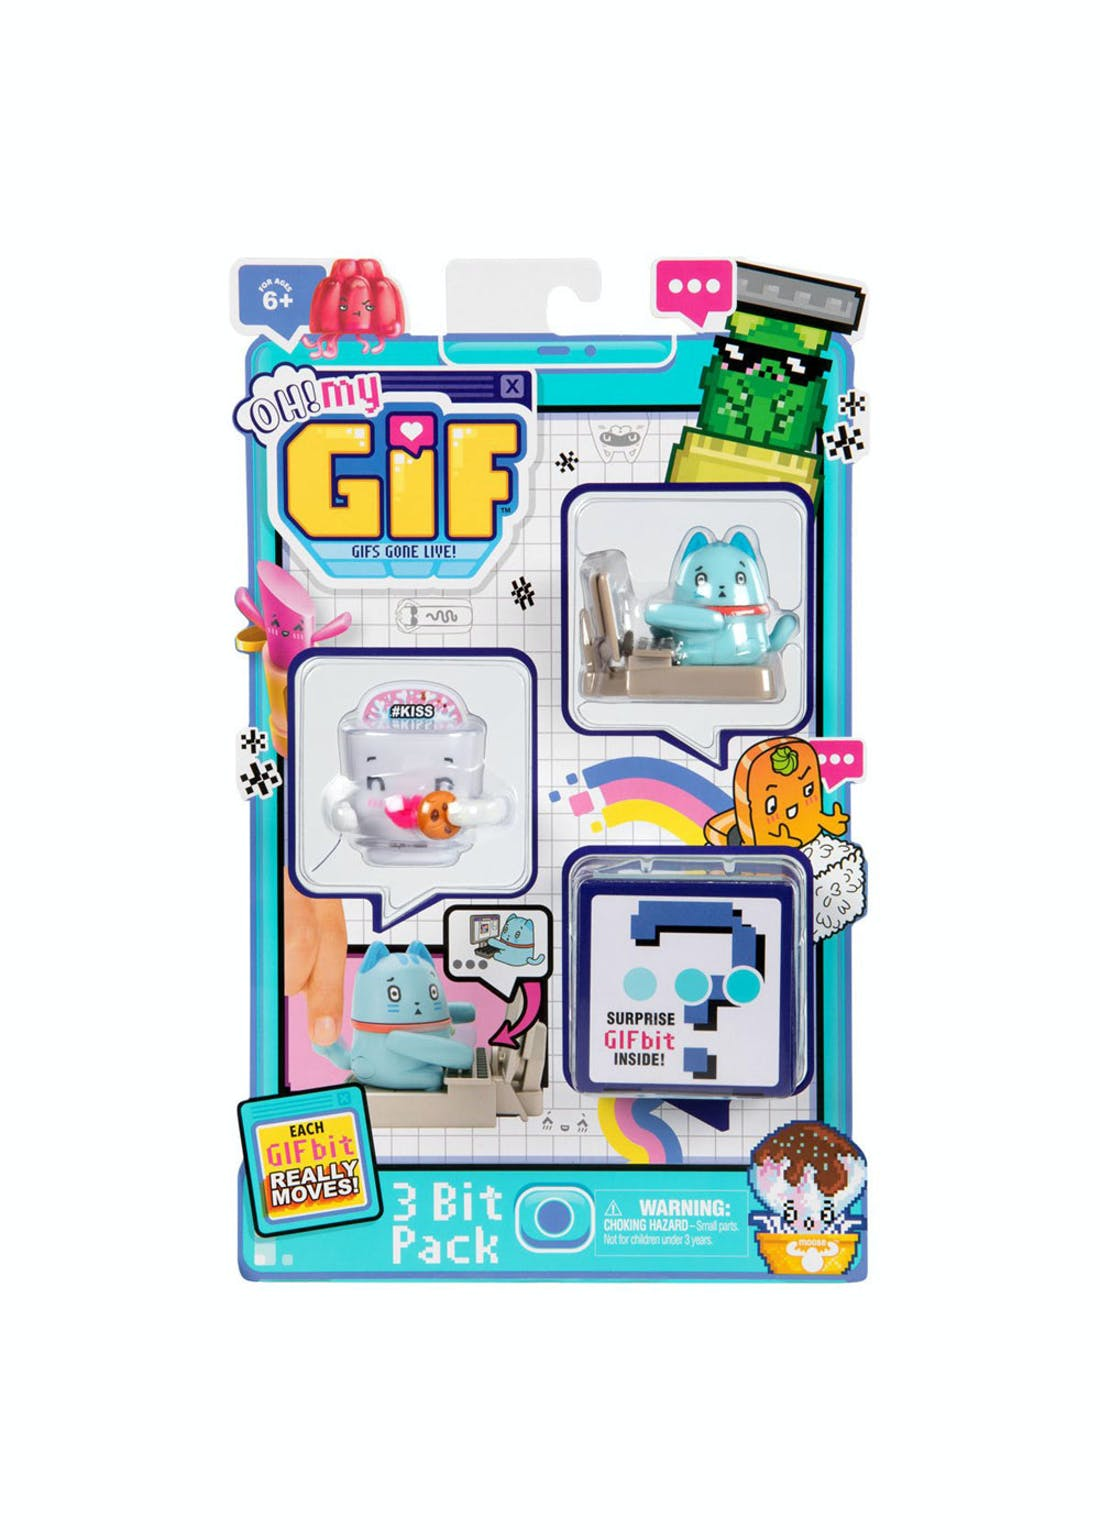 Oh My Gif Animated Figures - 3 Bit Pack (6cm x 6cm x 4cm)